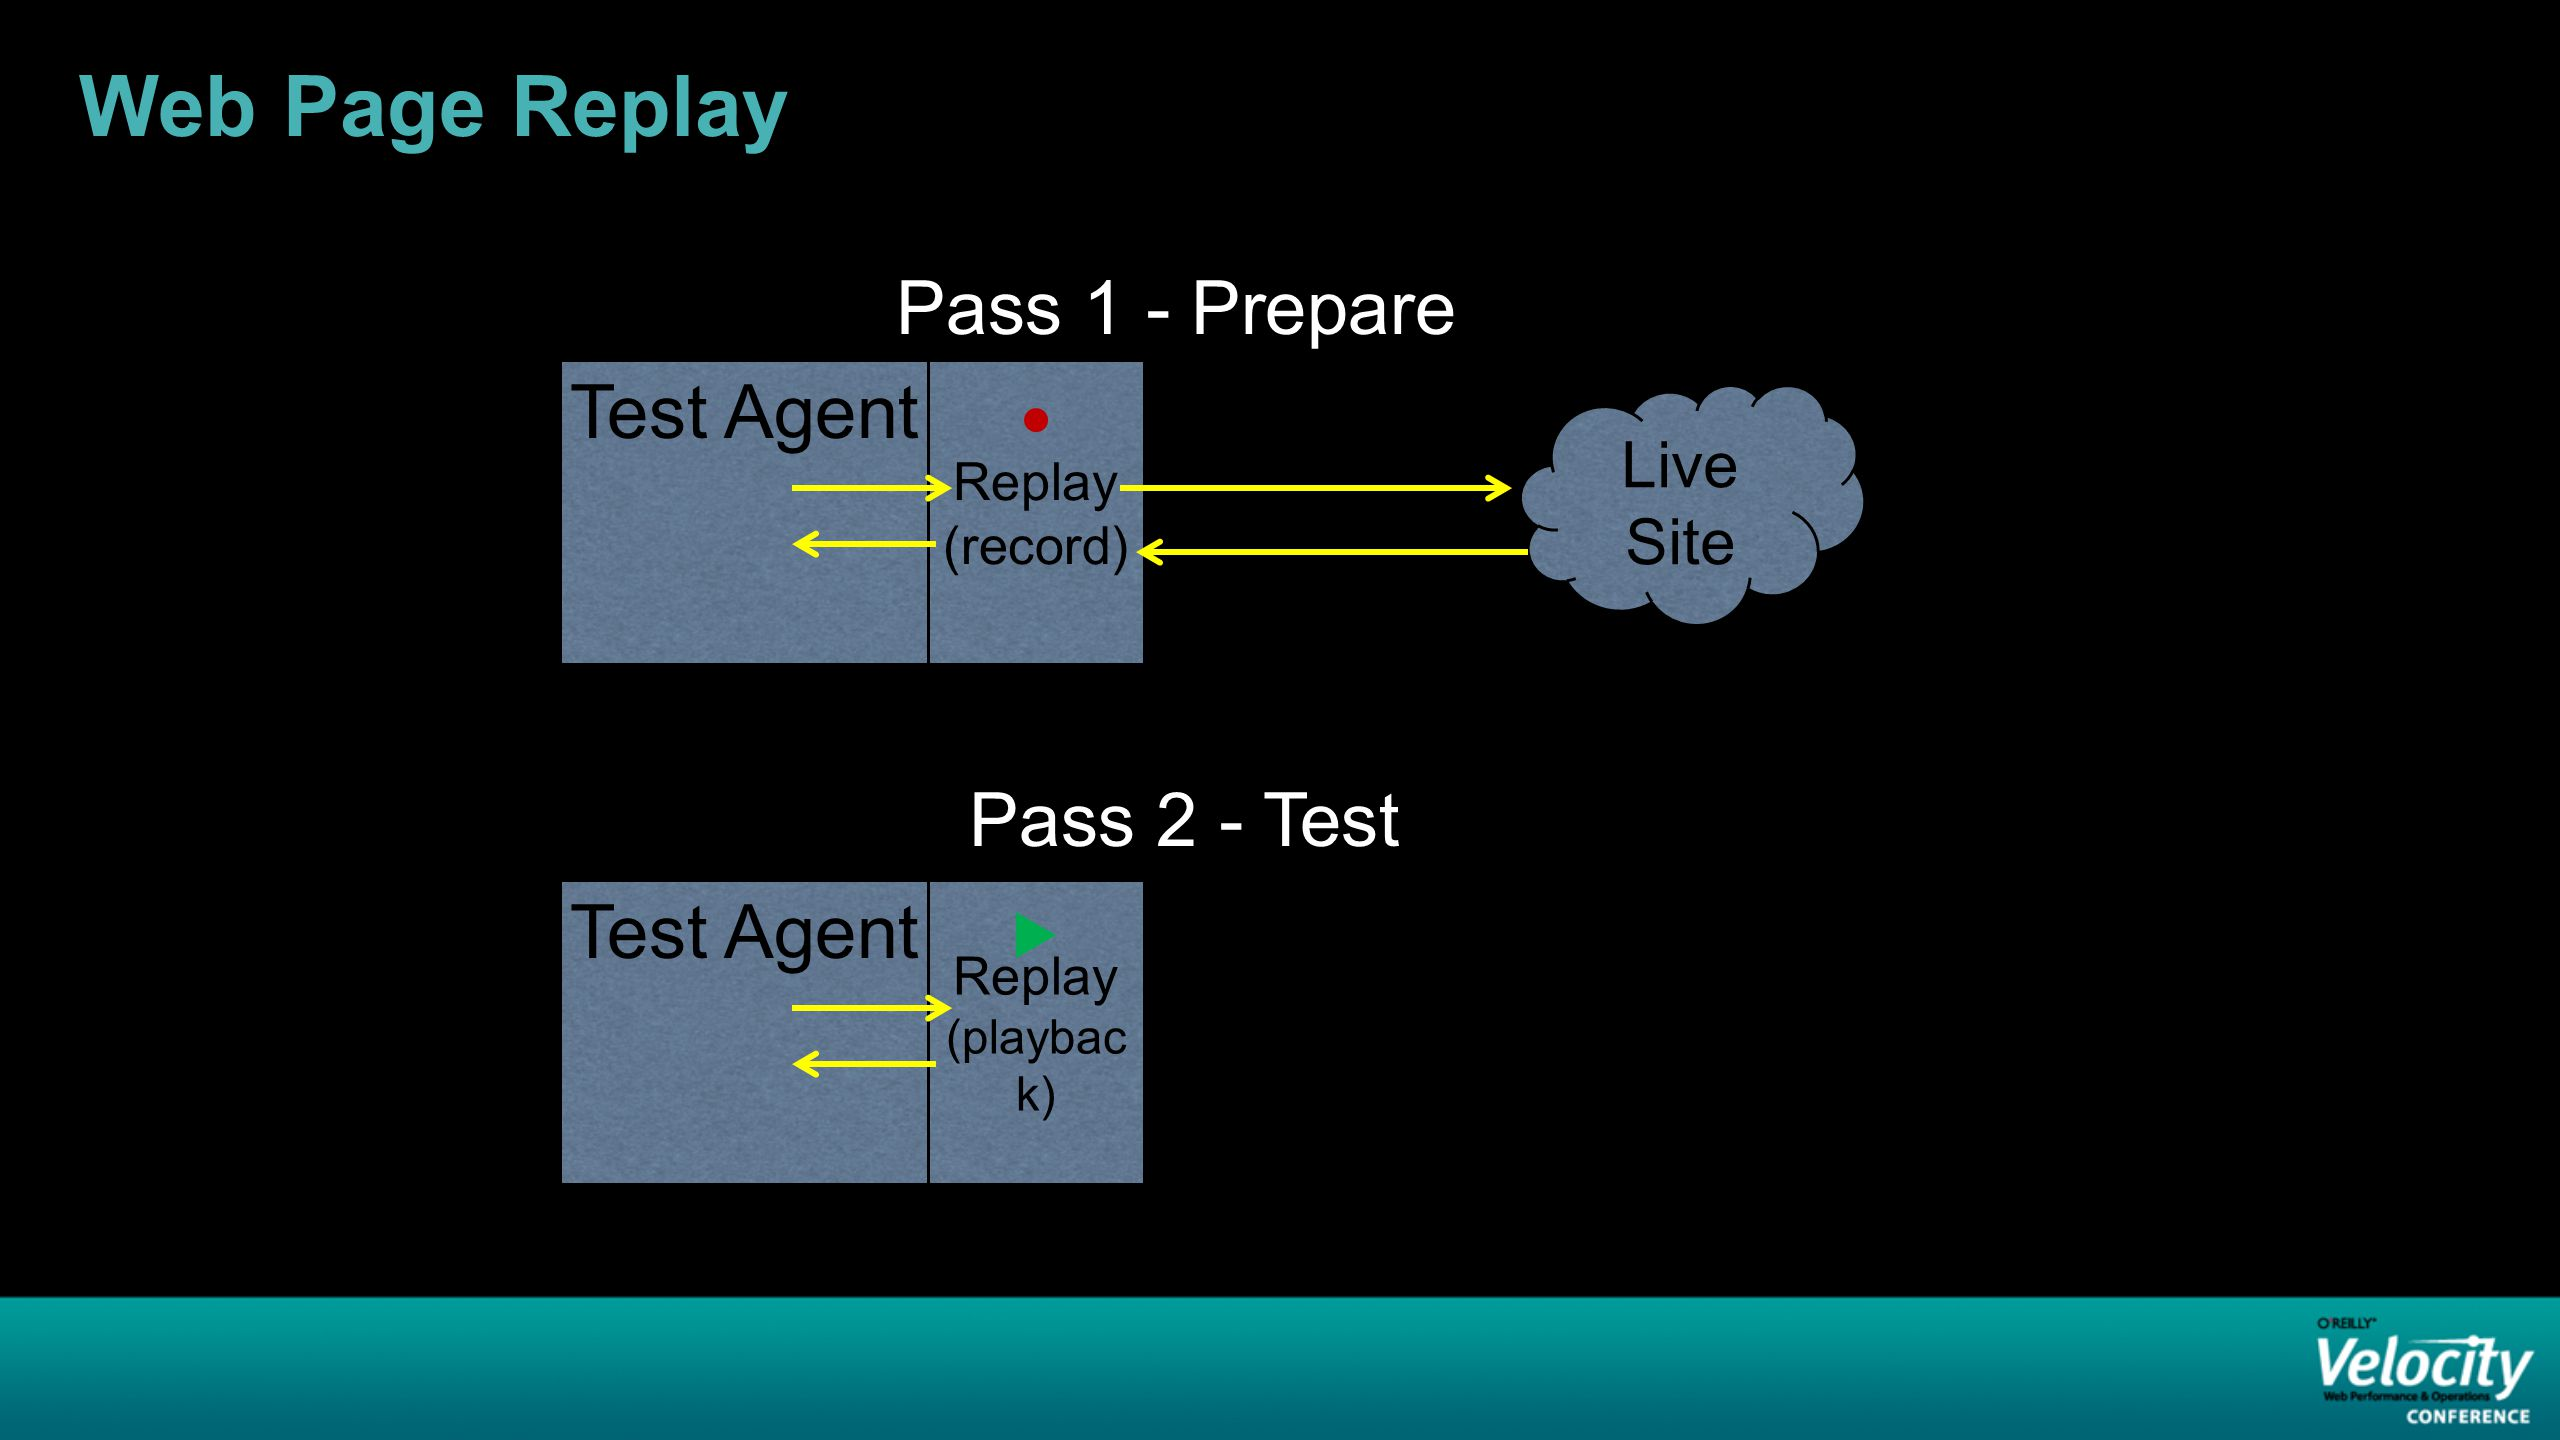 Web Page Replay Live Site Test Agent Replay (record) Test Agent Replay (playbac k) Pass 1 - Prepare Pass 2 - Test